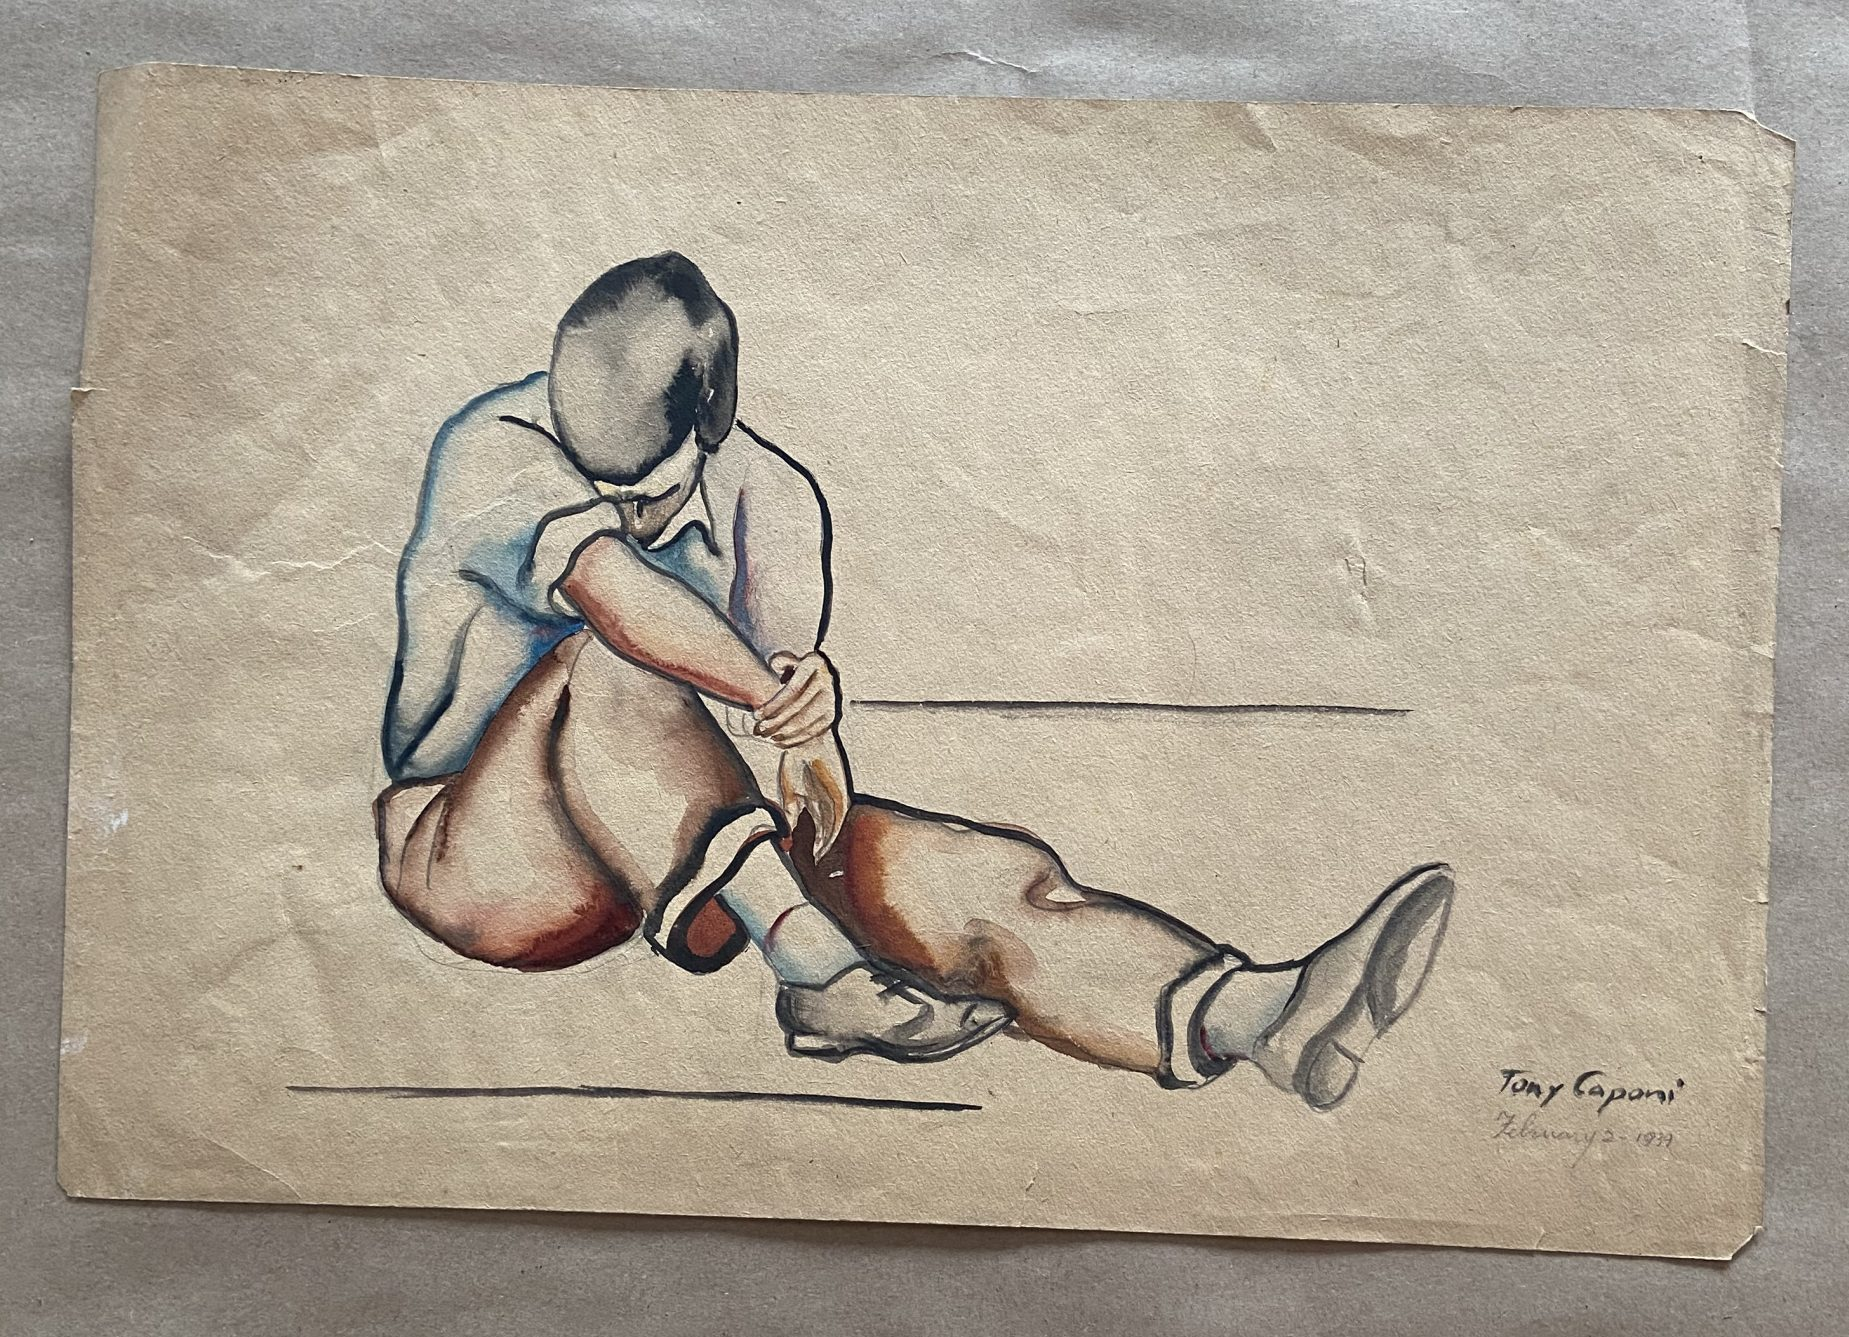 A watercolor drawing of a male human